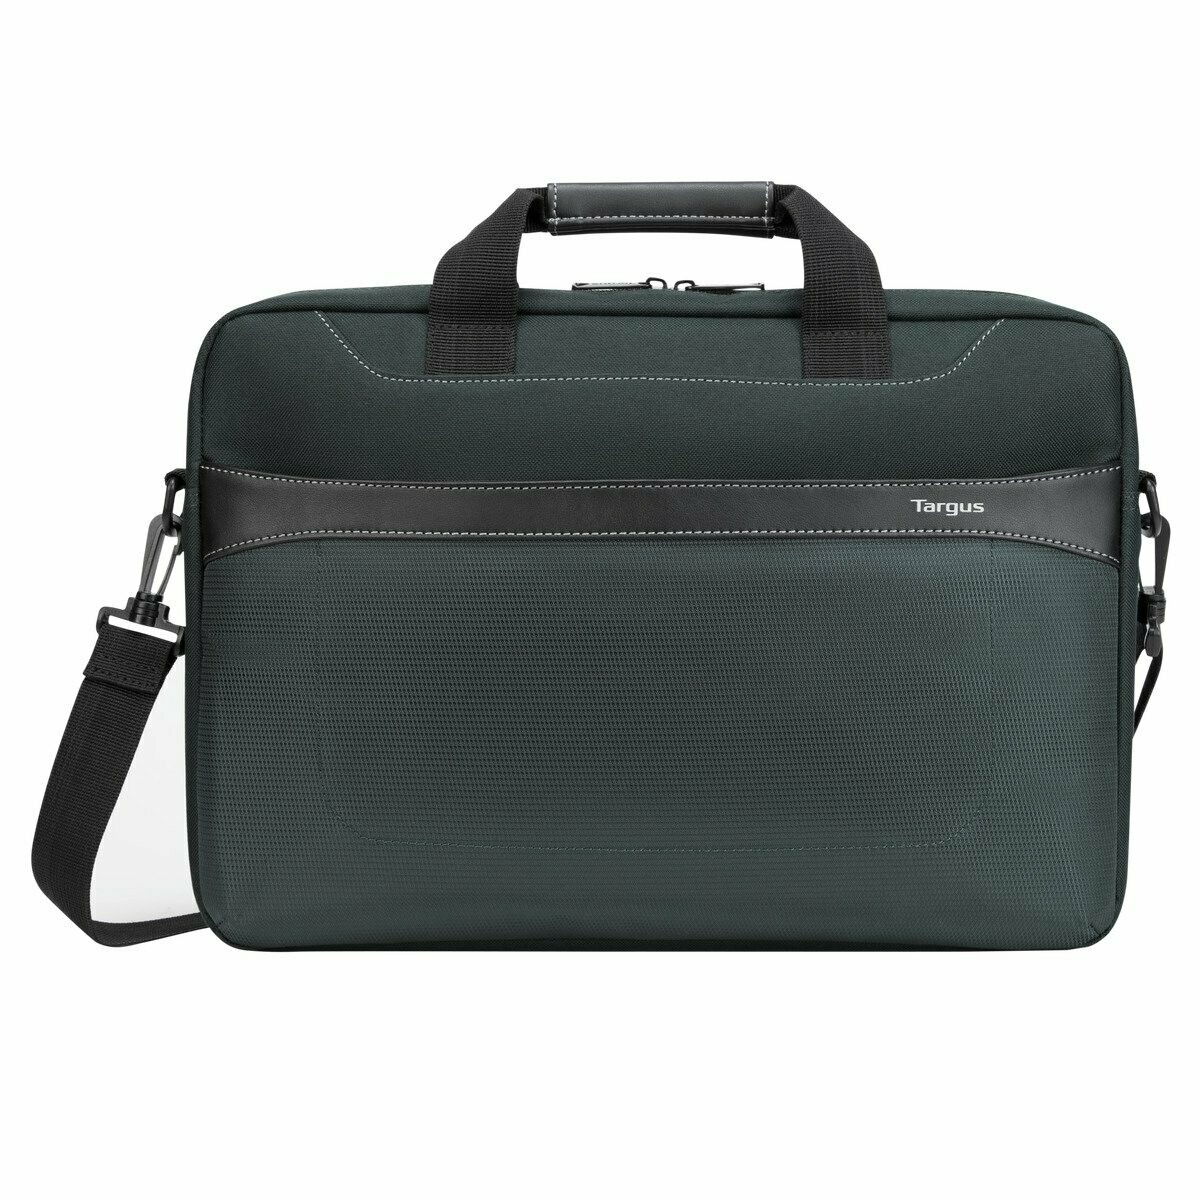 "Targus Geolite Essential 15.6"" Laptop Case  TSS98401"